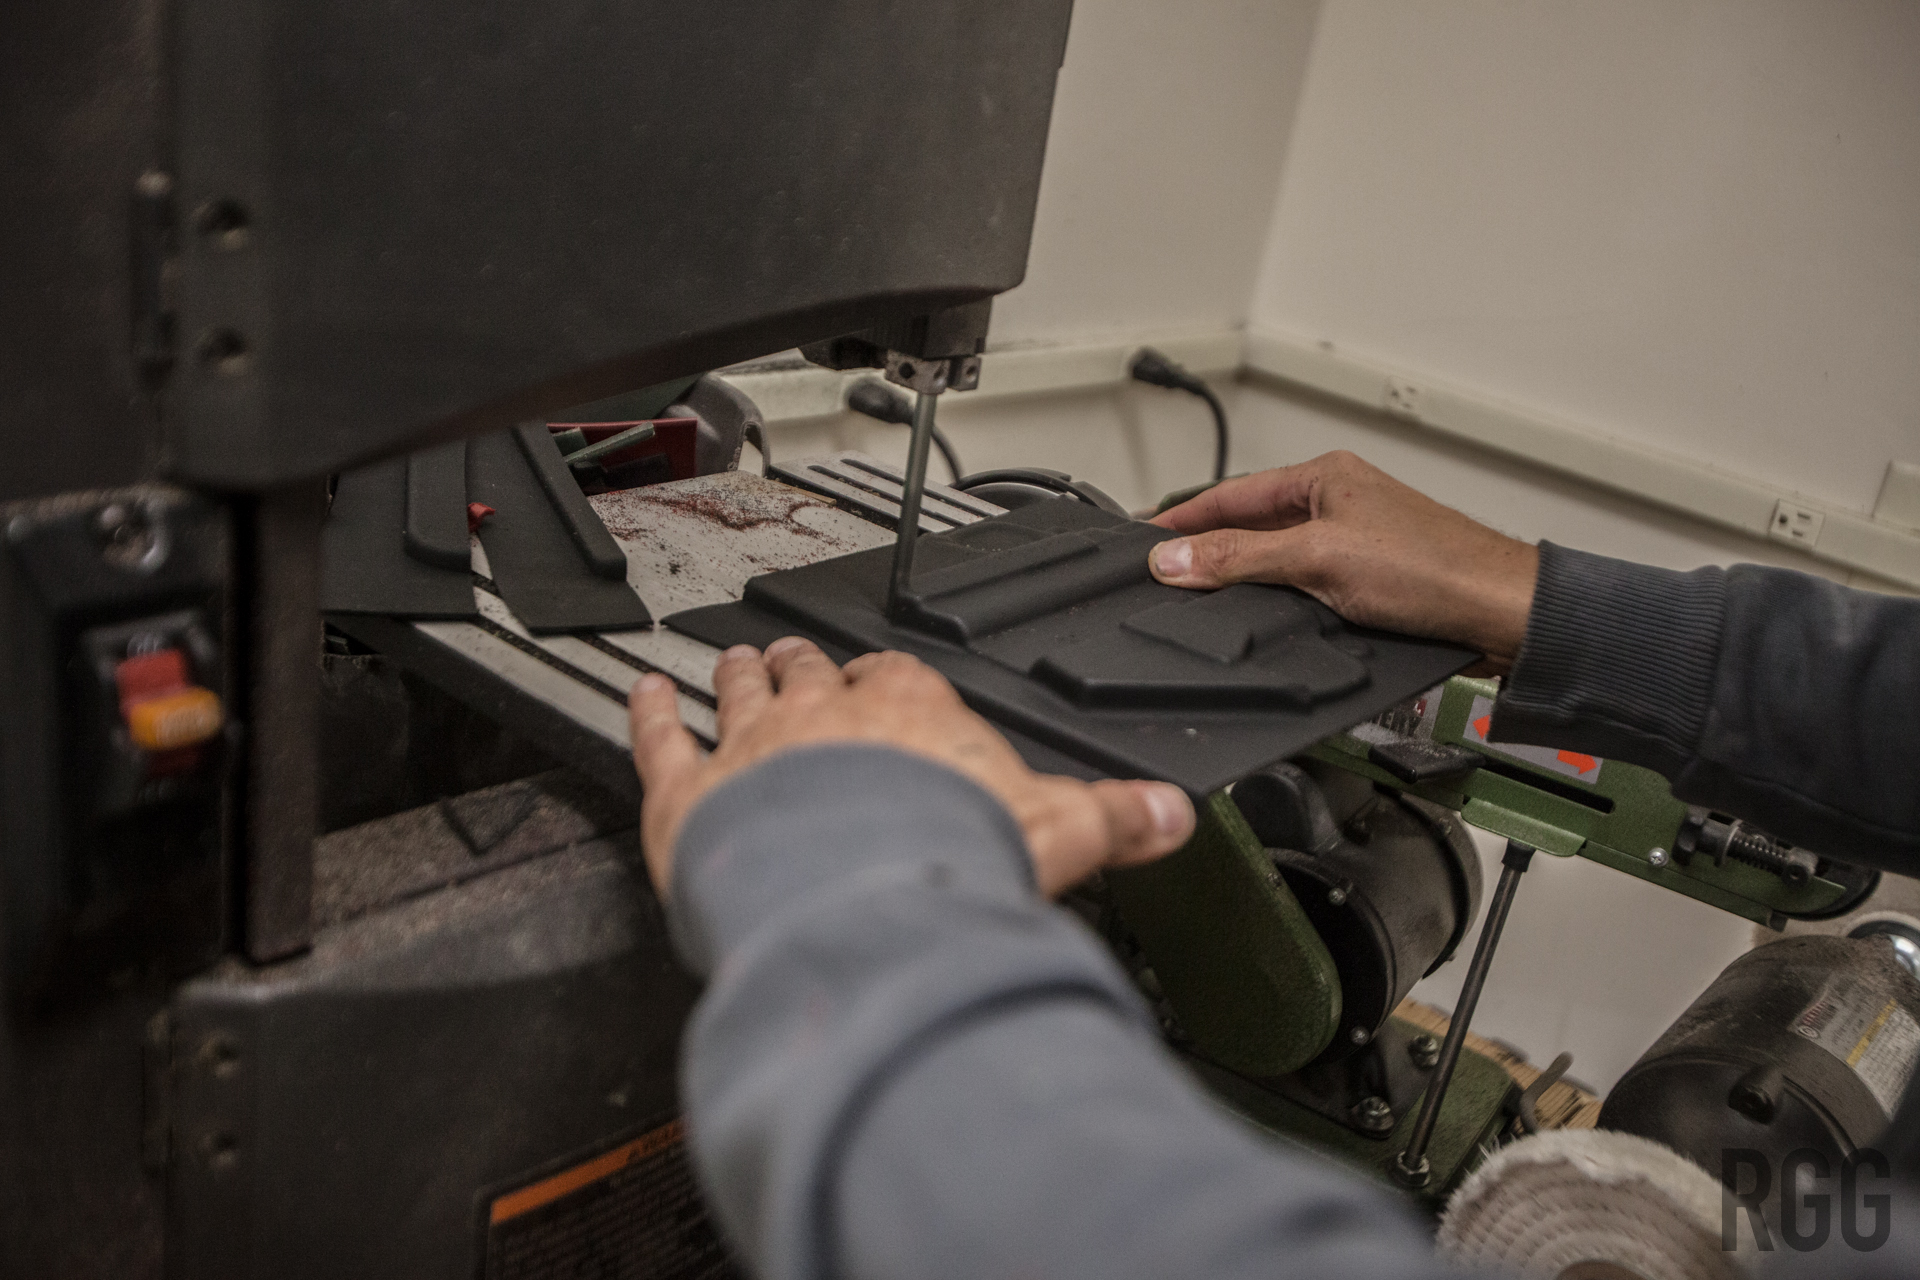 Orion uses a band saw to cut the excess Kydex from the unfinished holster...